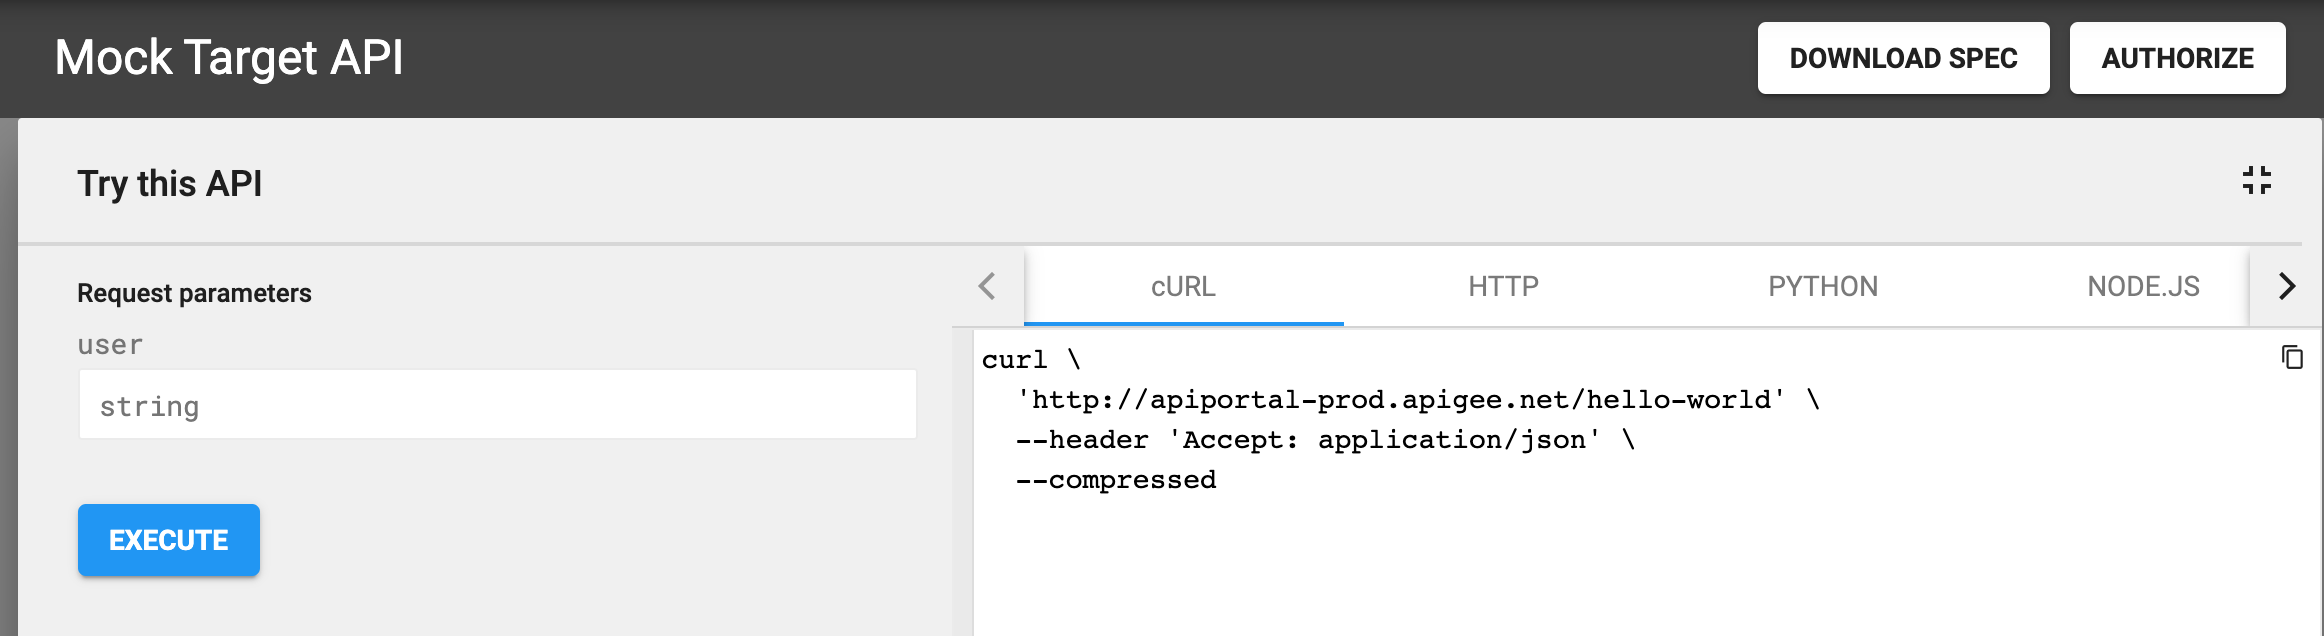 Expanded Try this API panel